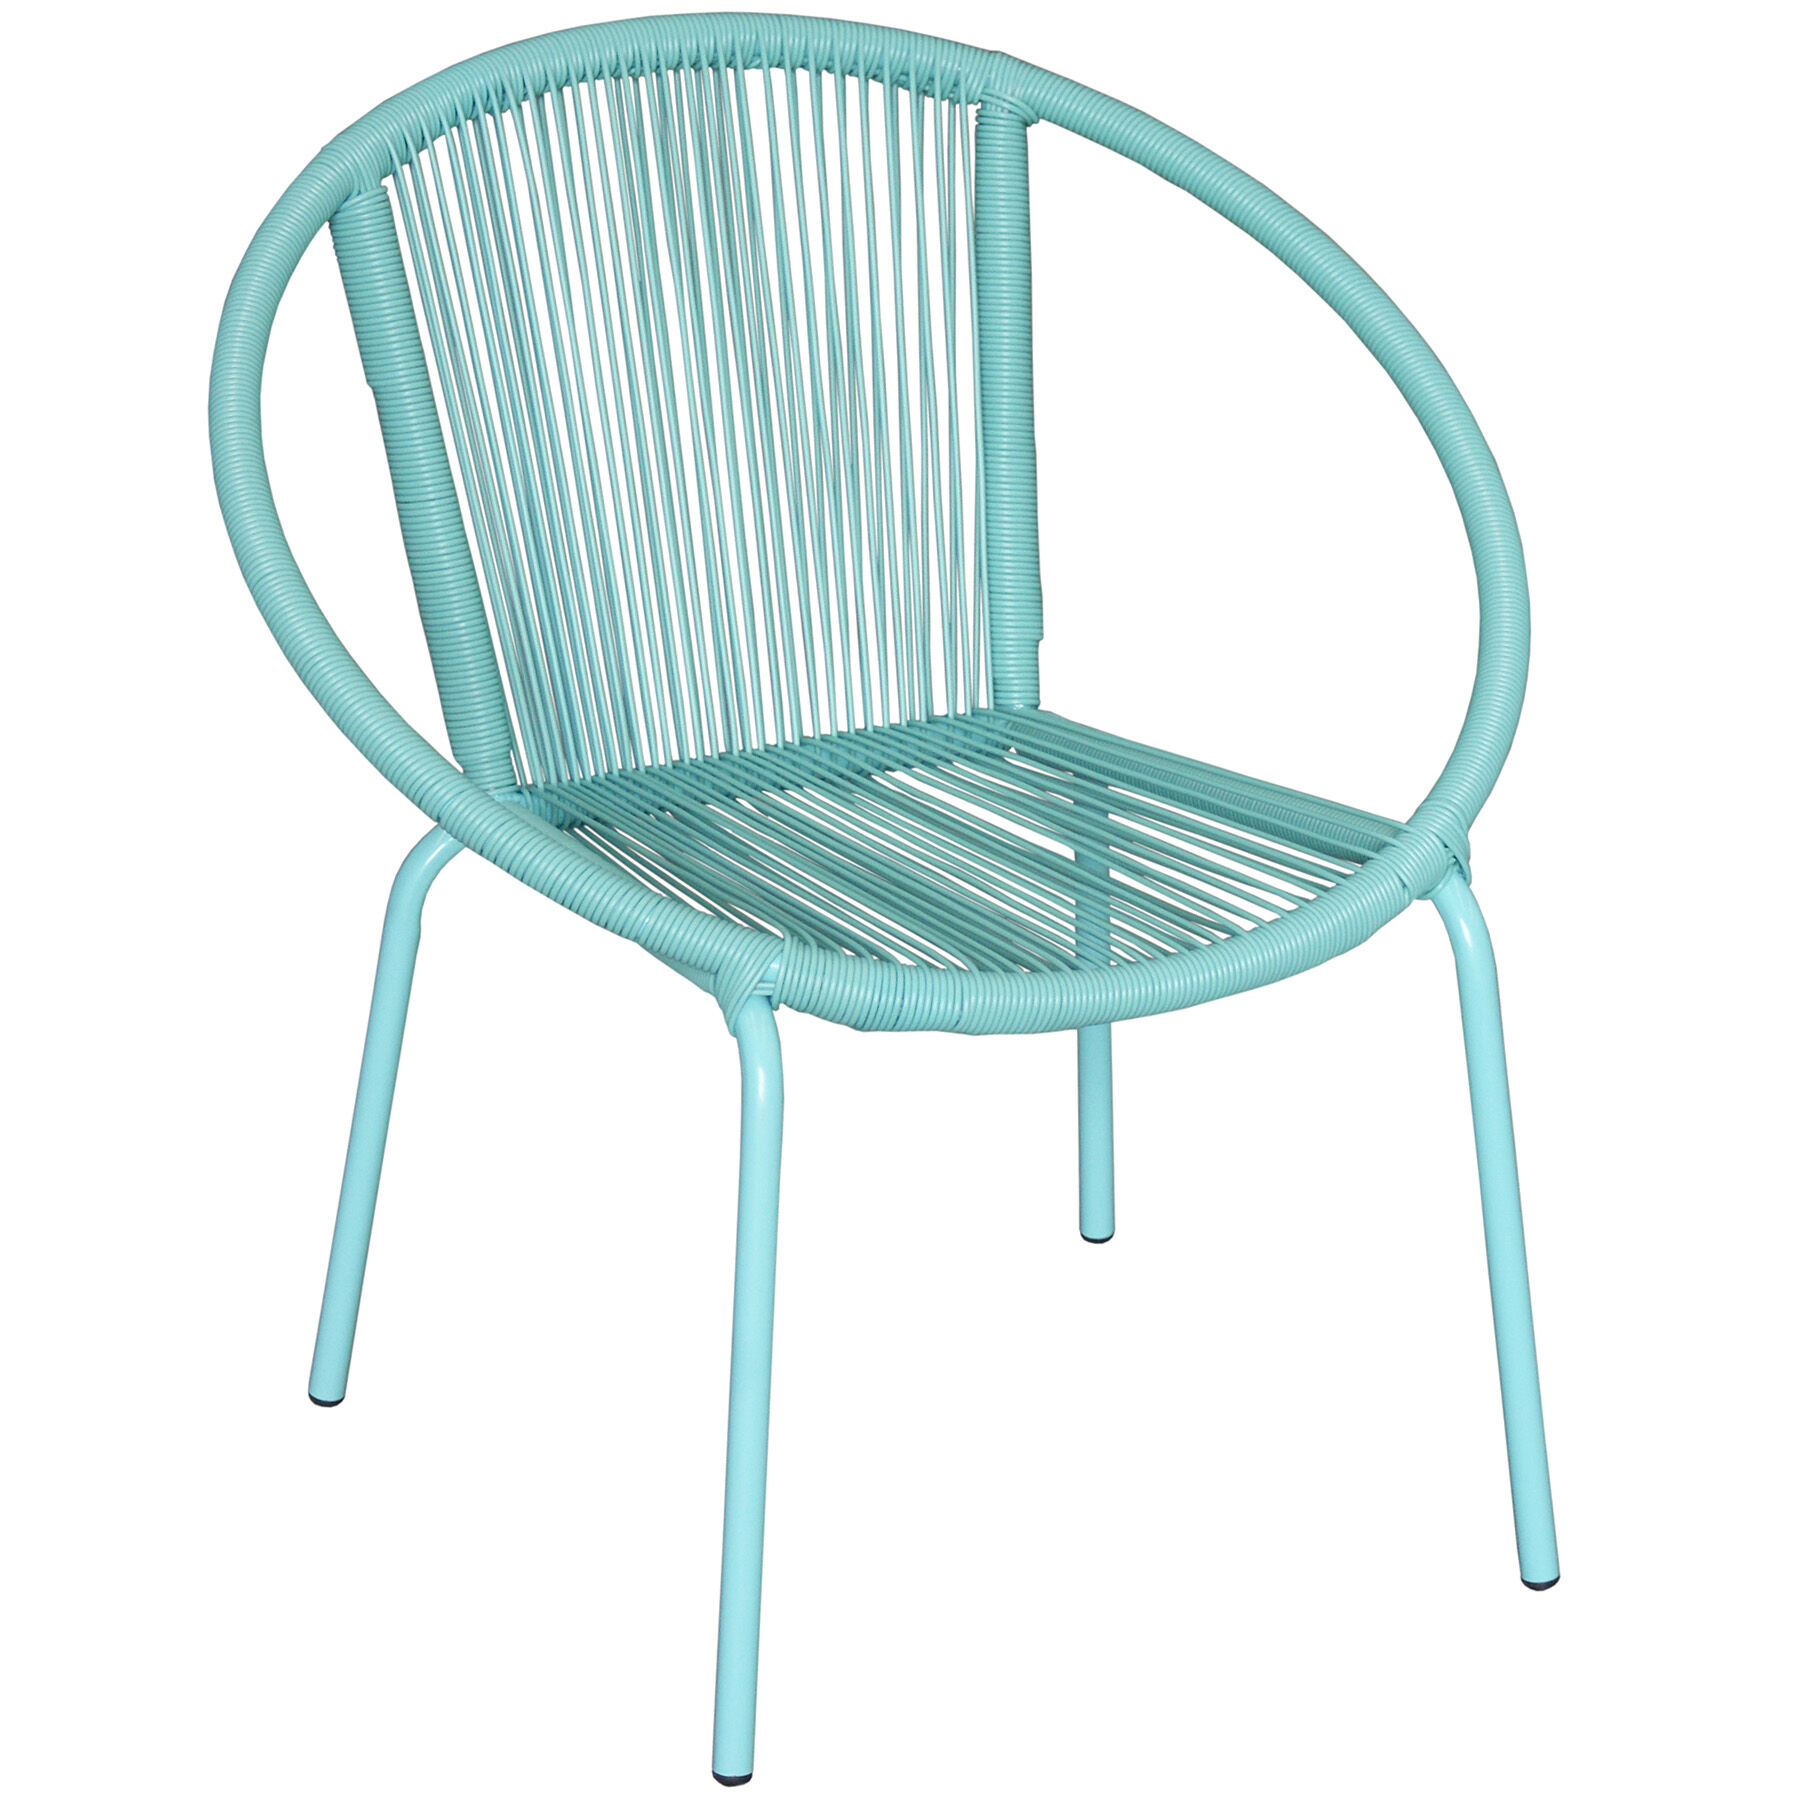 round wicker chair can you paint a faux leather aqua at home zoom